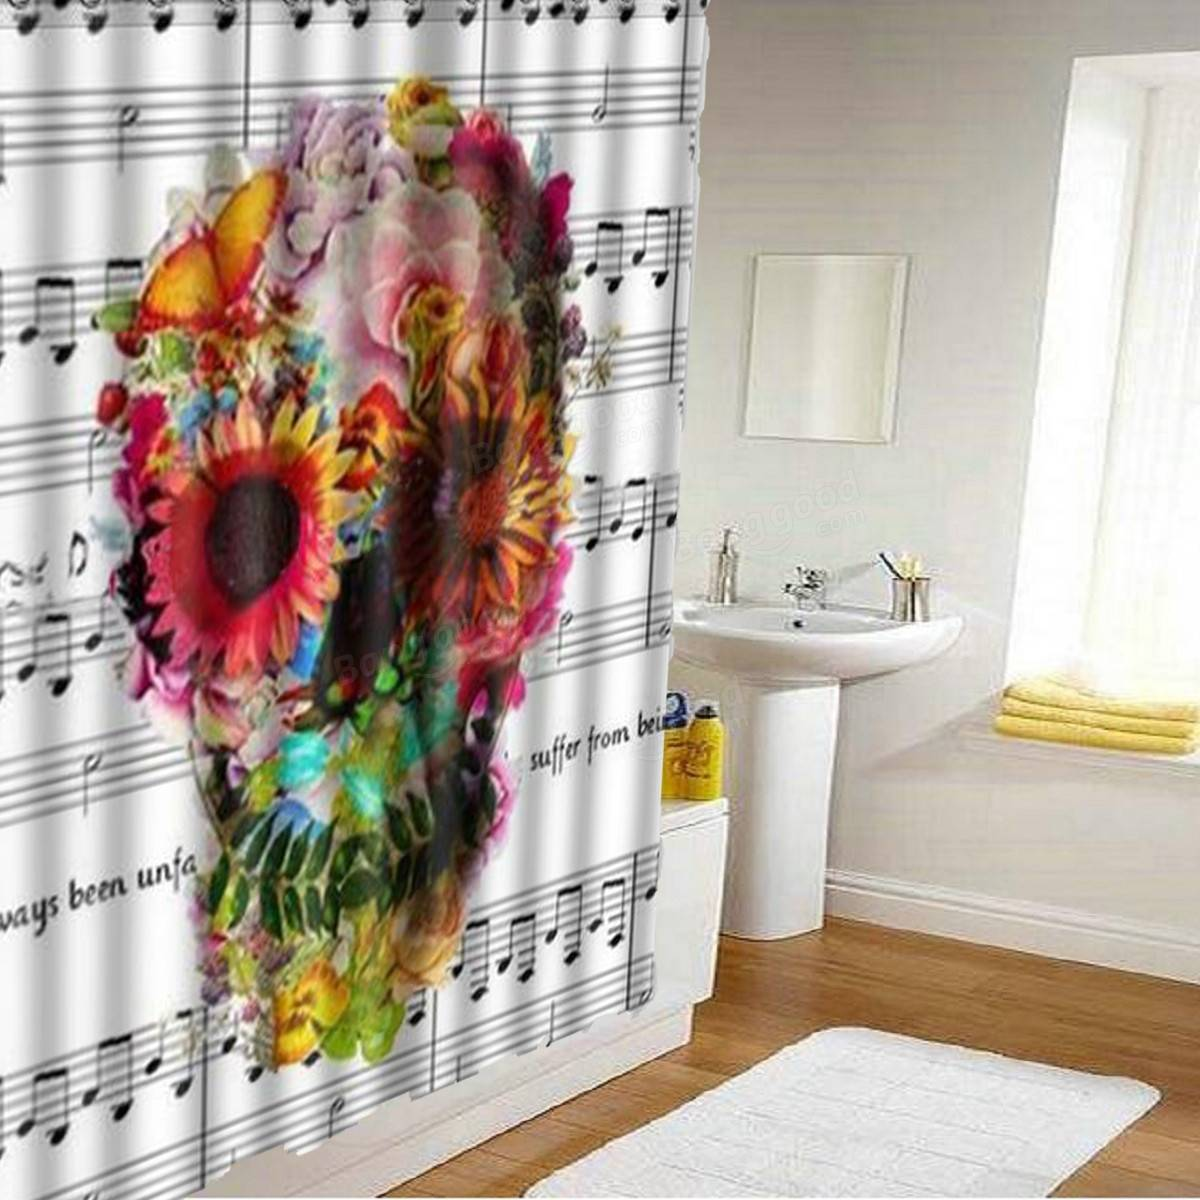 Bathroom with shower curtain